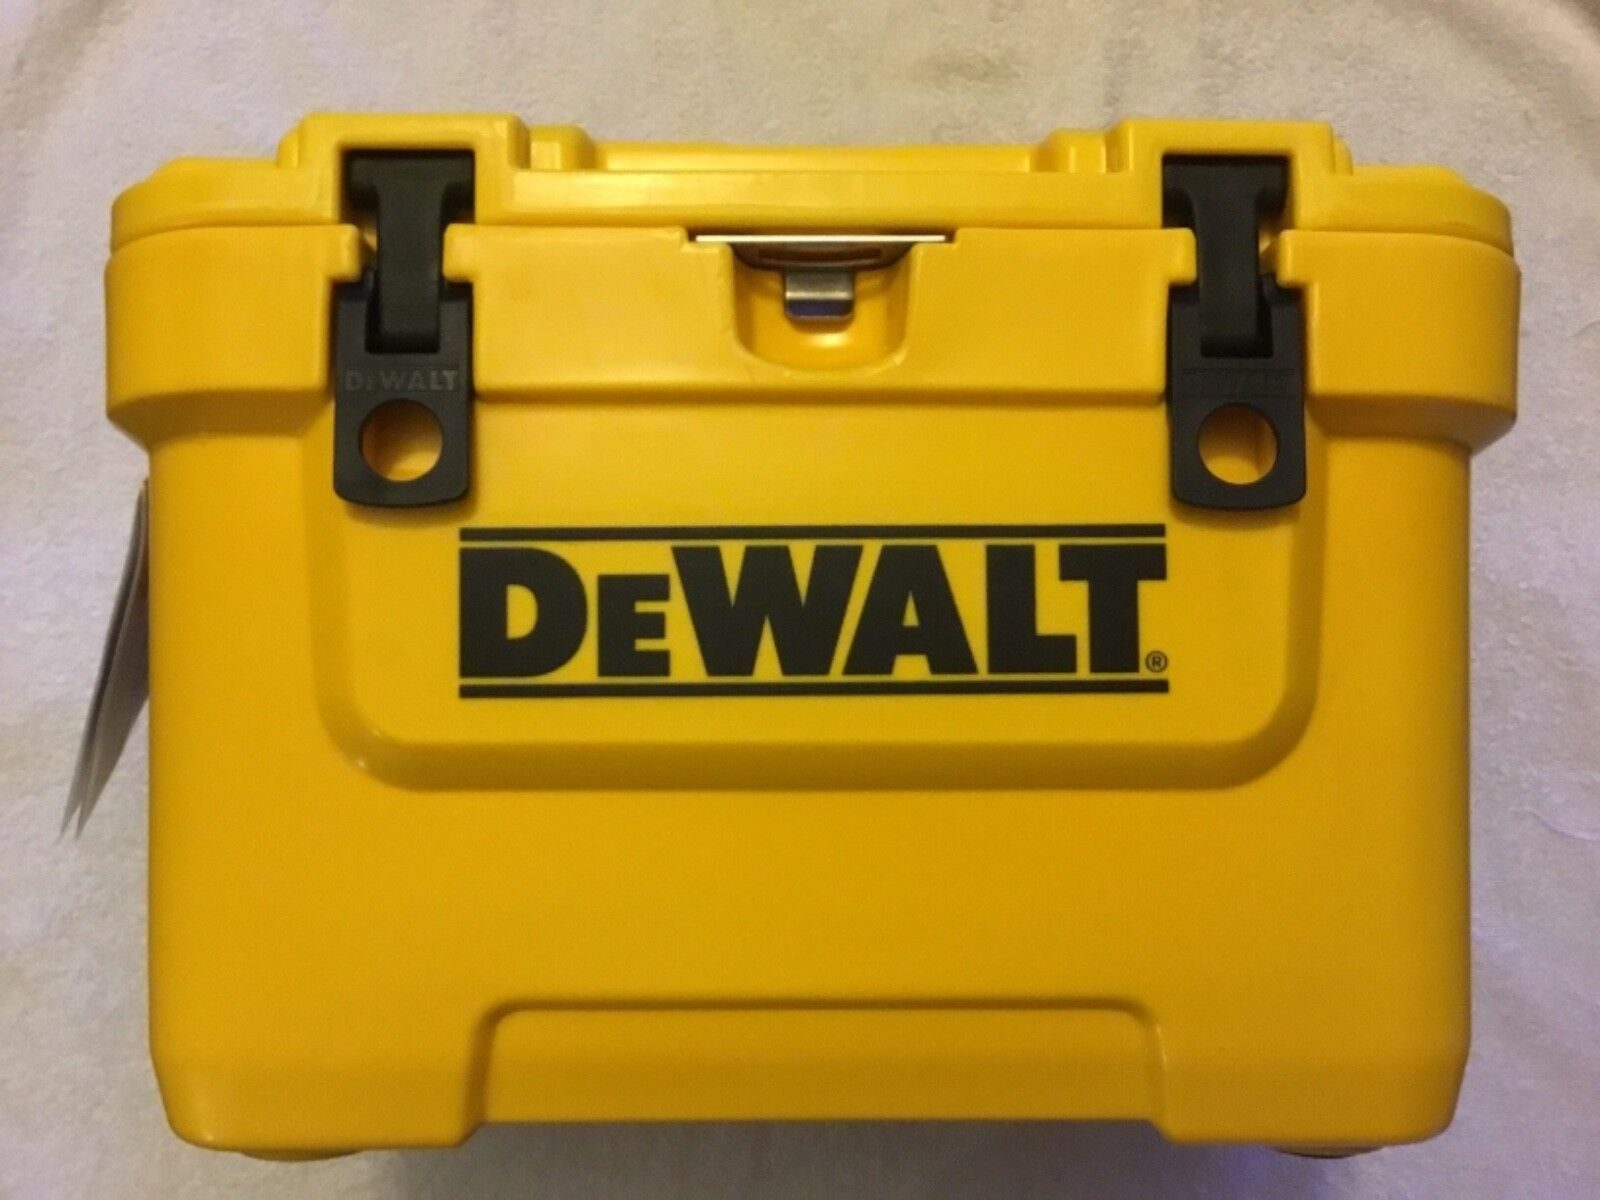 nouveau DeWalt DXC10QT 10 Quart Heavy Duty rougeo Molded Jobsite Work Cooler